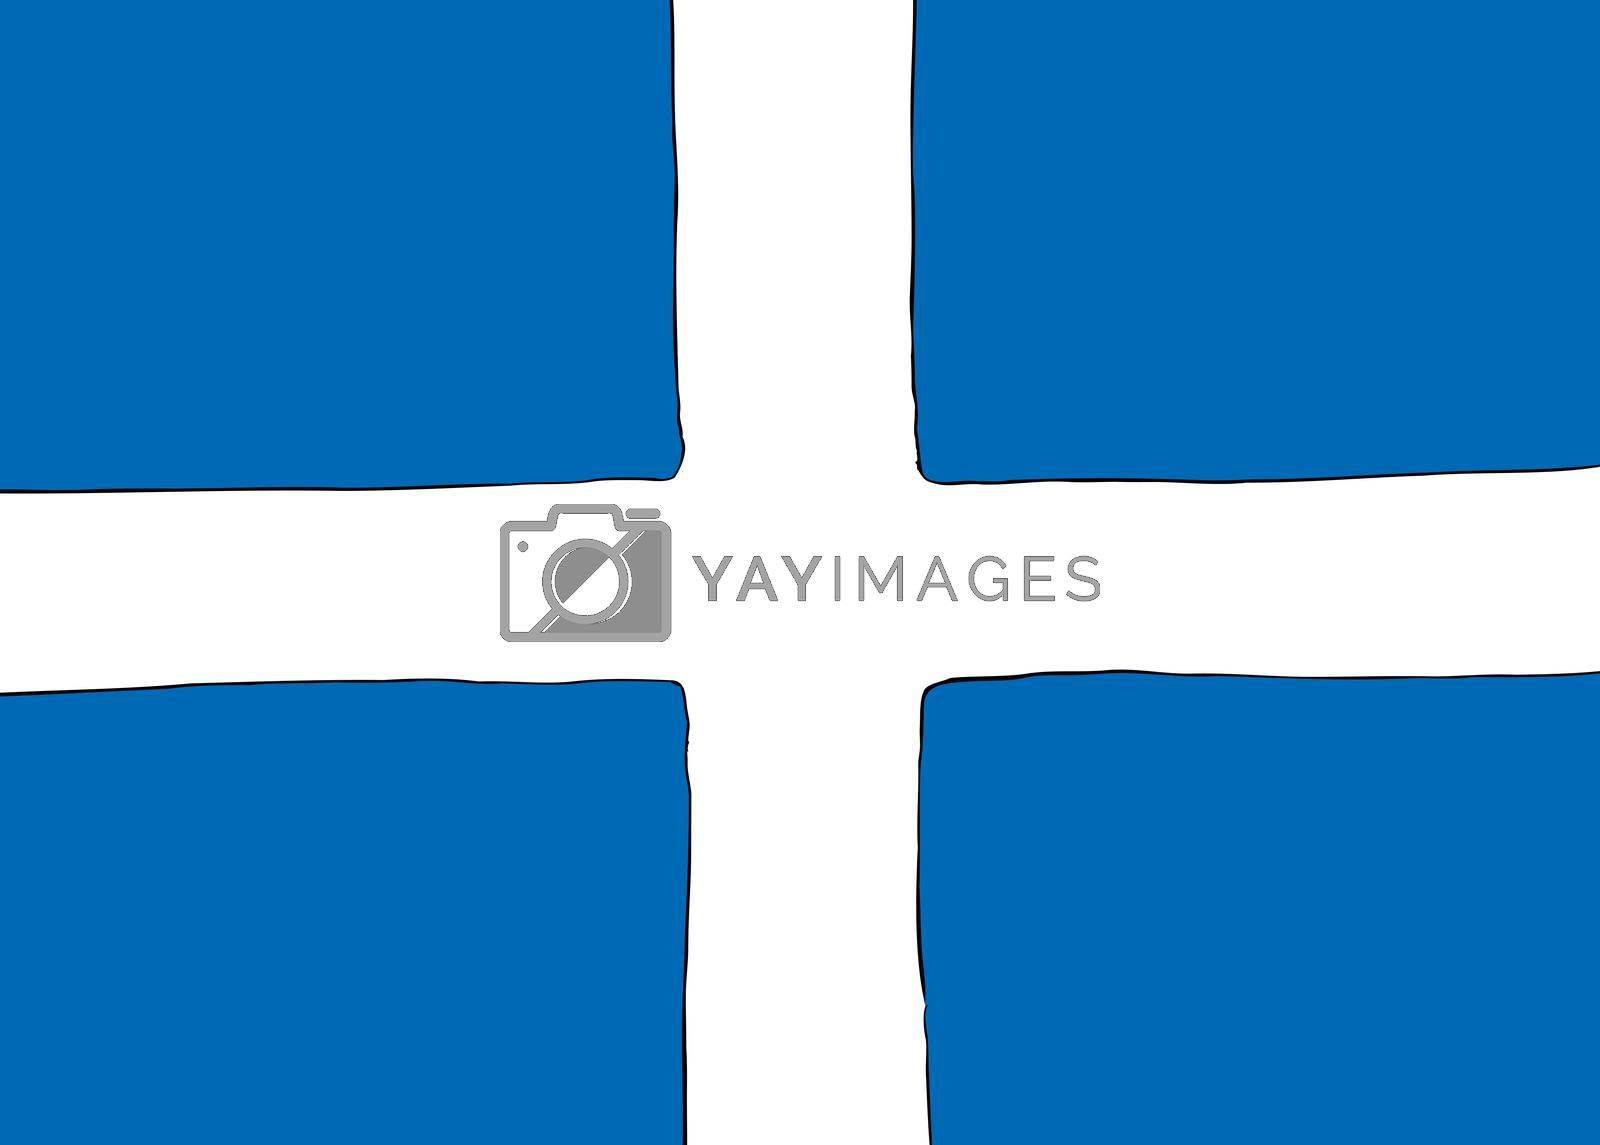 Symmetrical centered version of a Nordic Cross flag representing the Shetland Islands